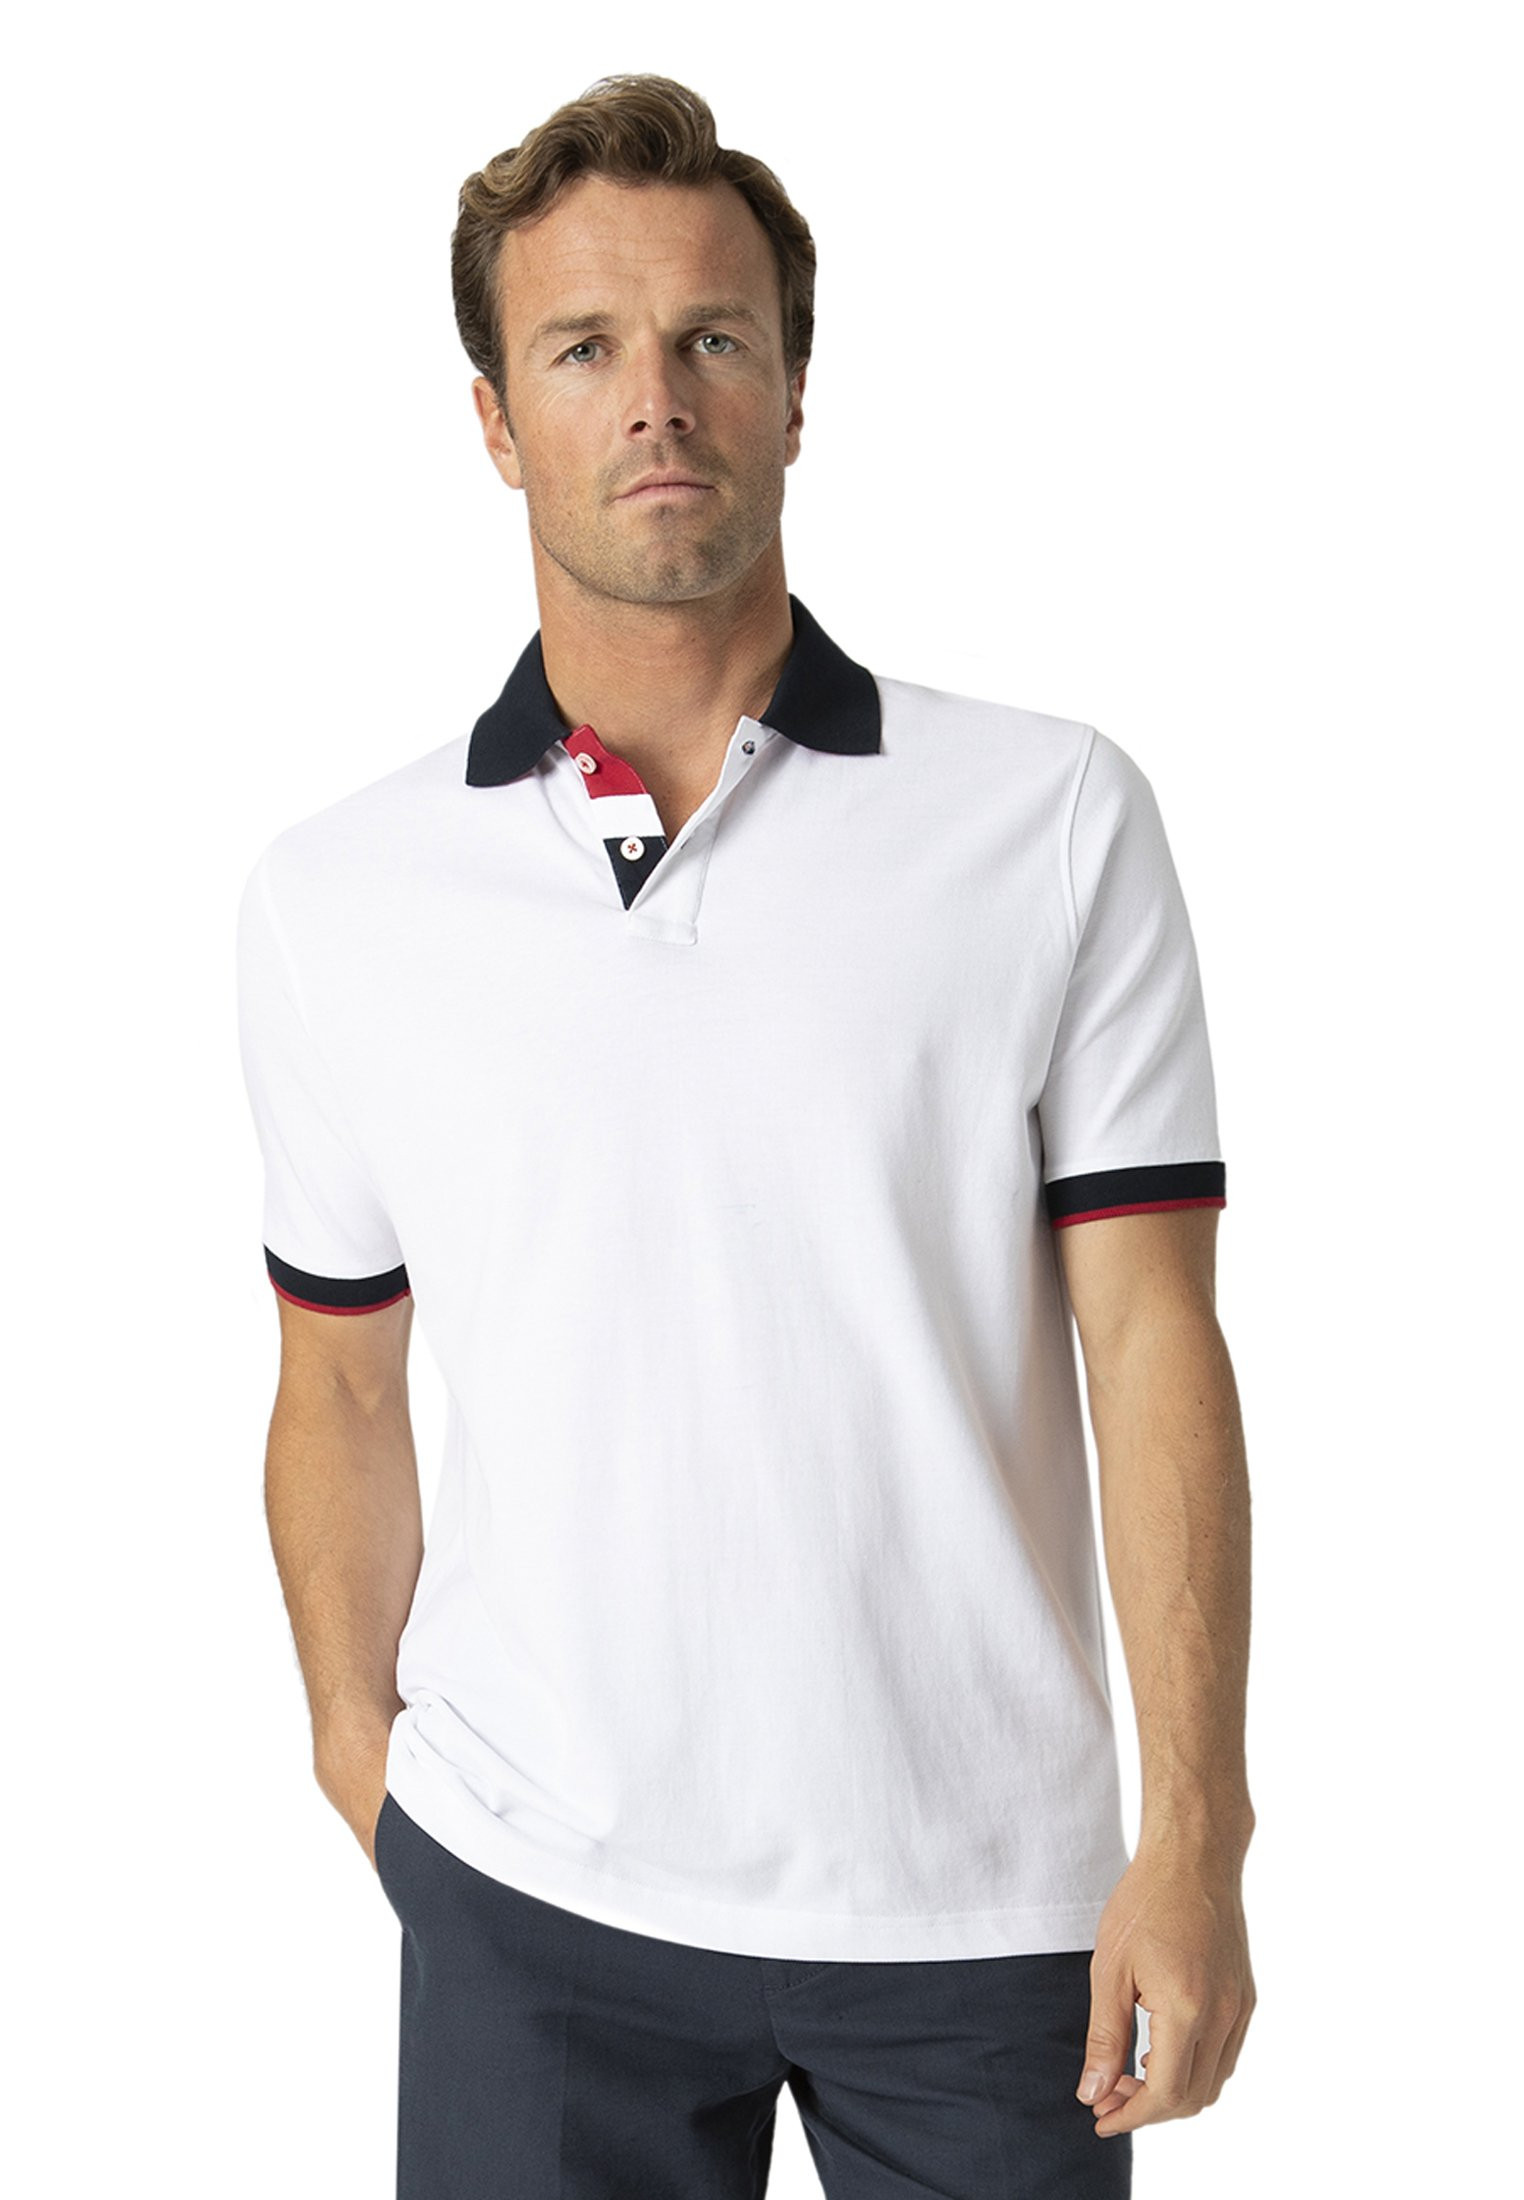 Lydford White With Navy Trim Pique Polo